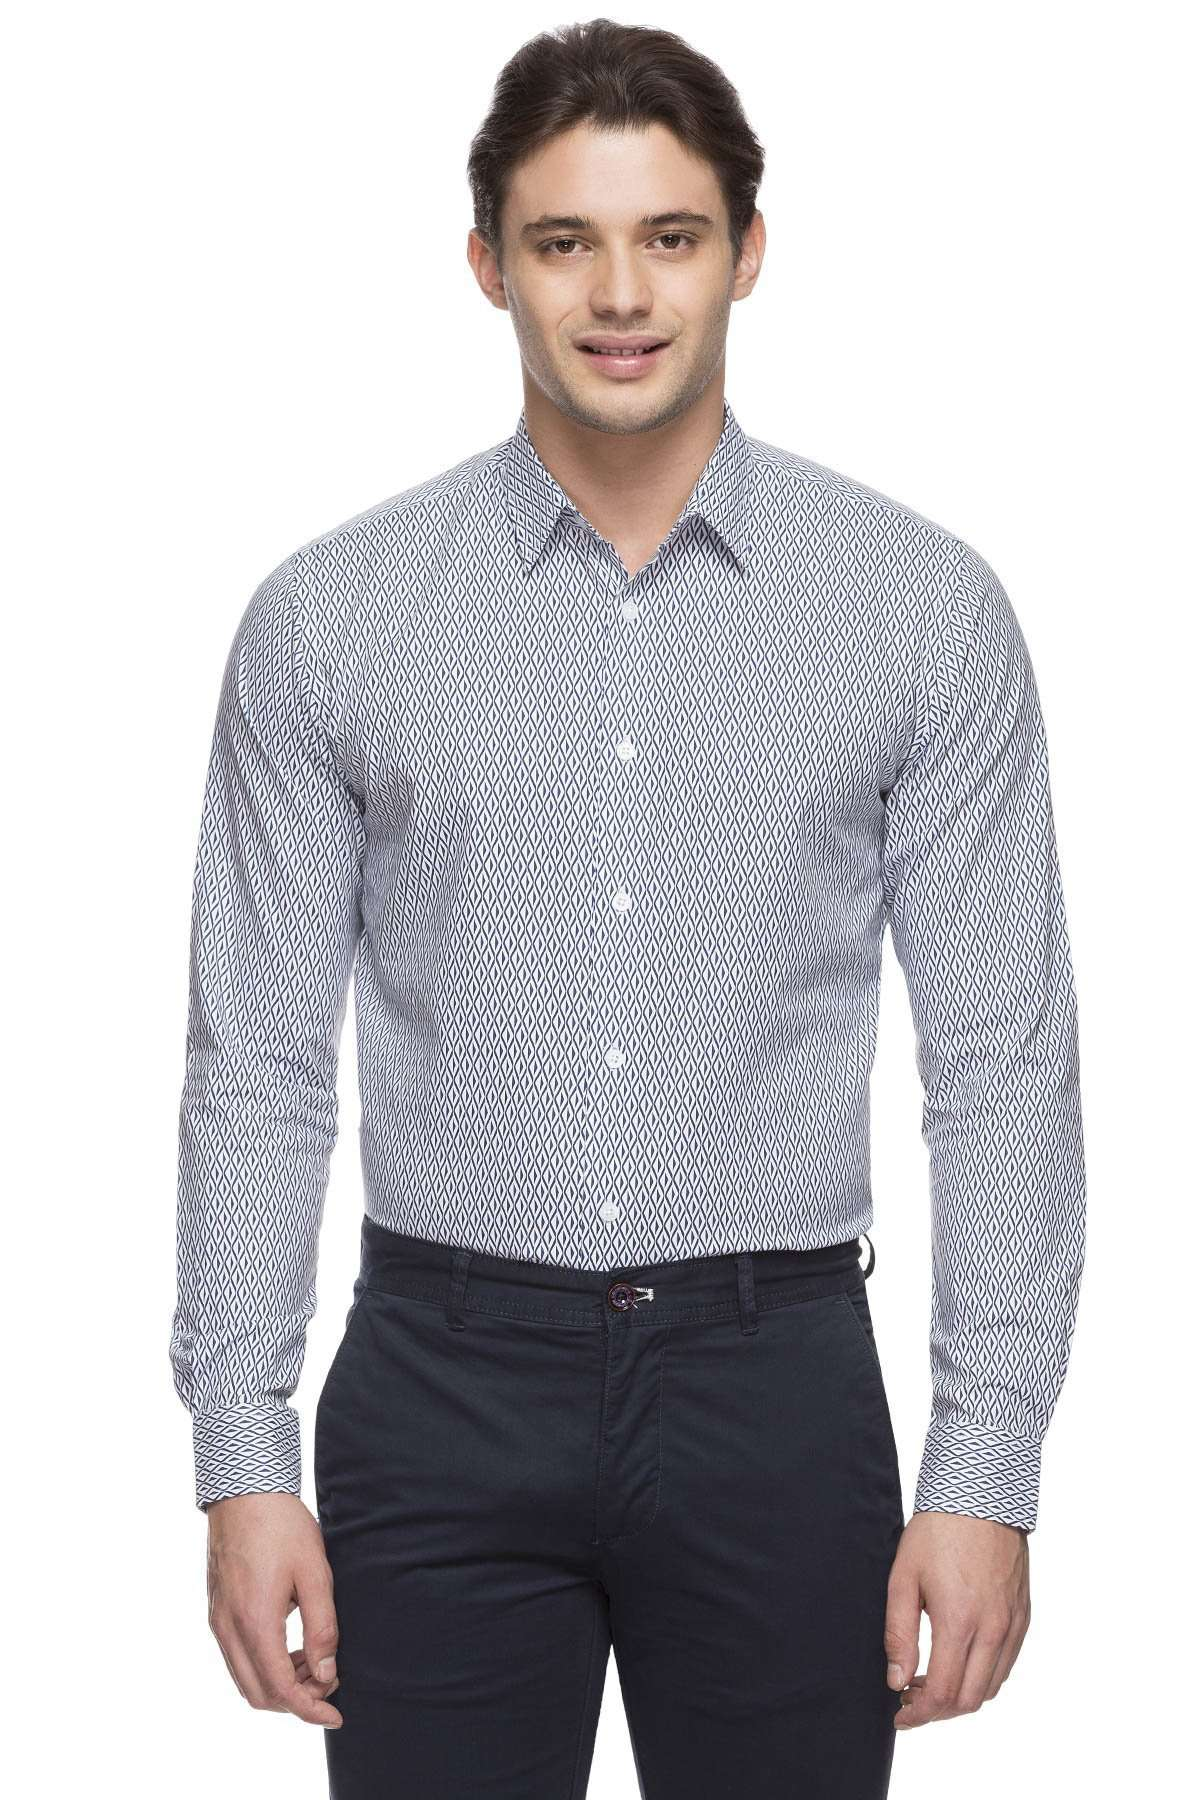 White Cotton Shirt Mens Casual Wear Slim Fit Cotton Shirt